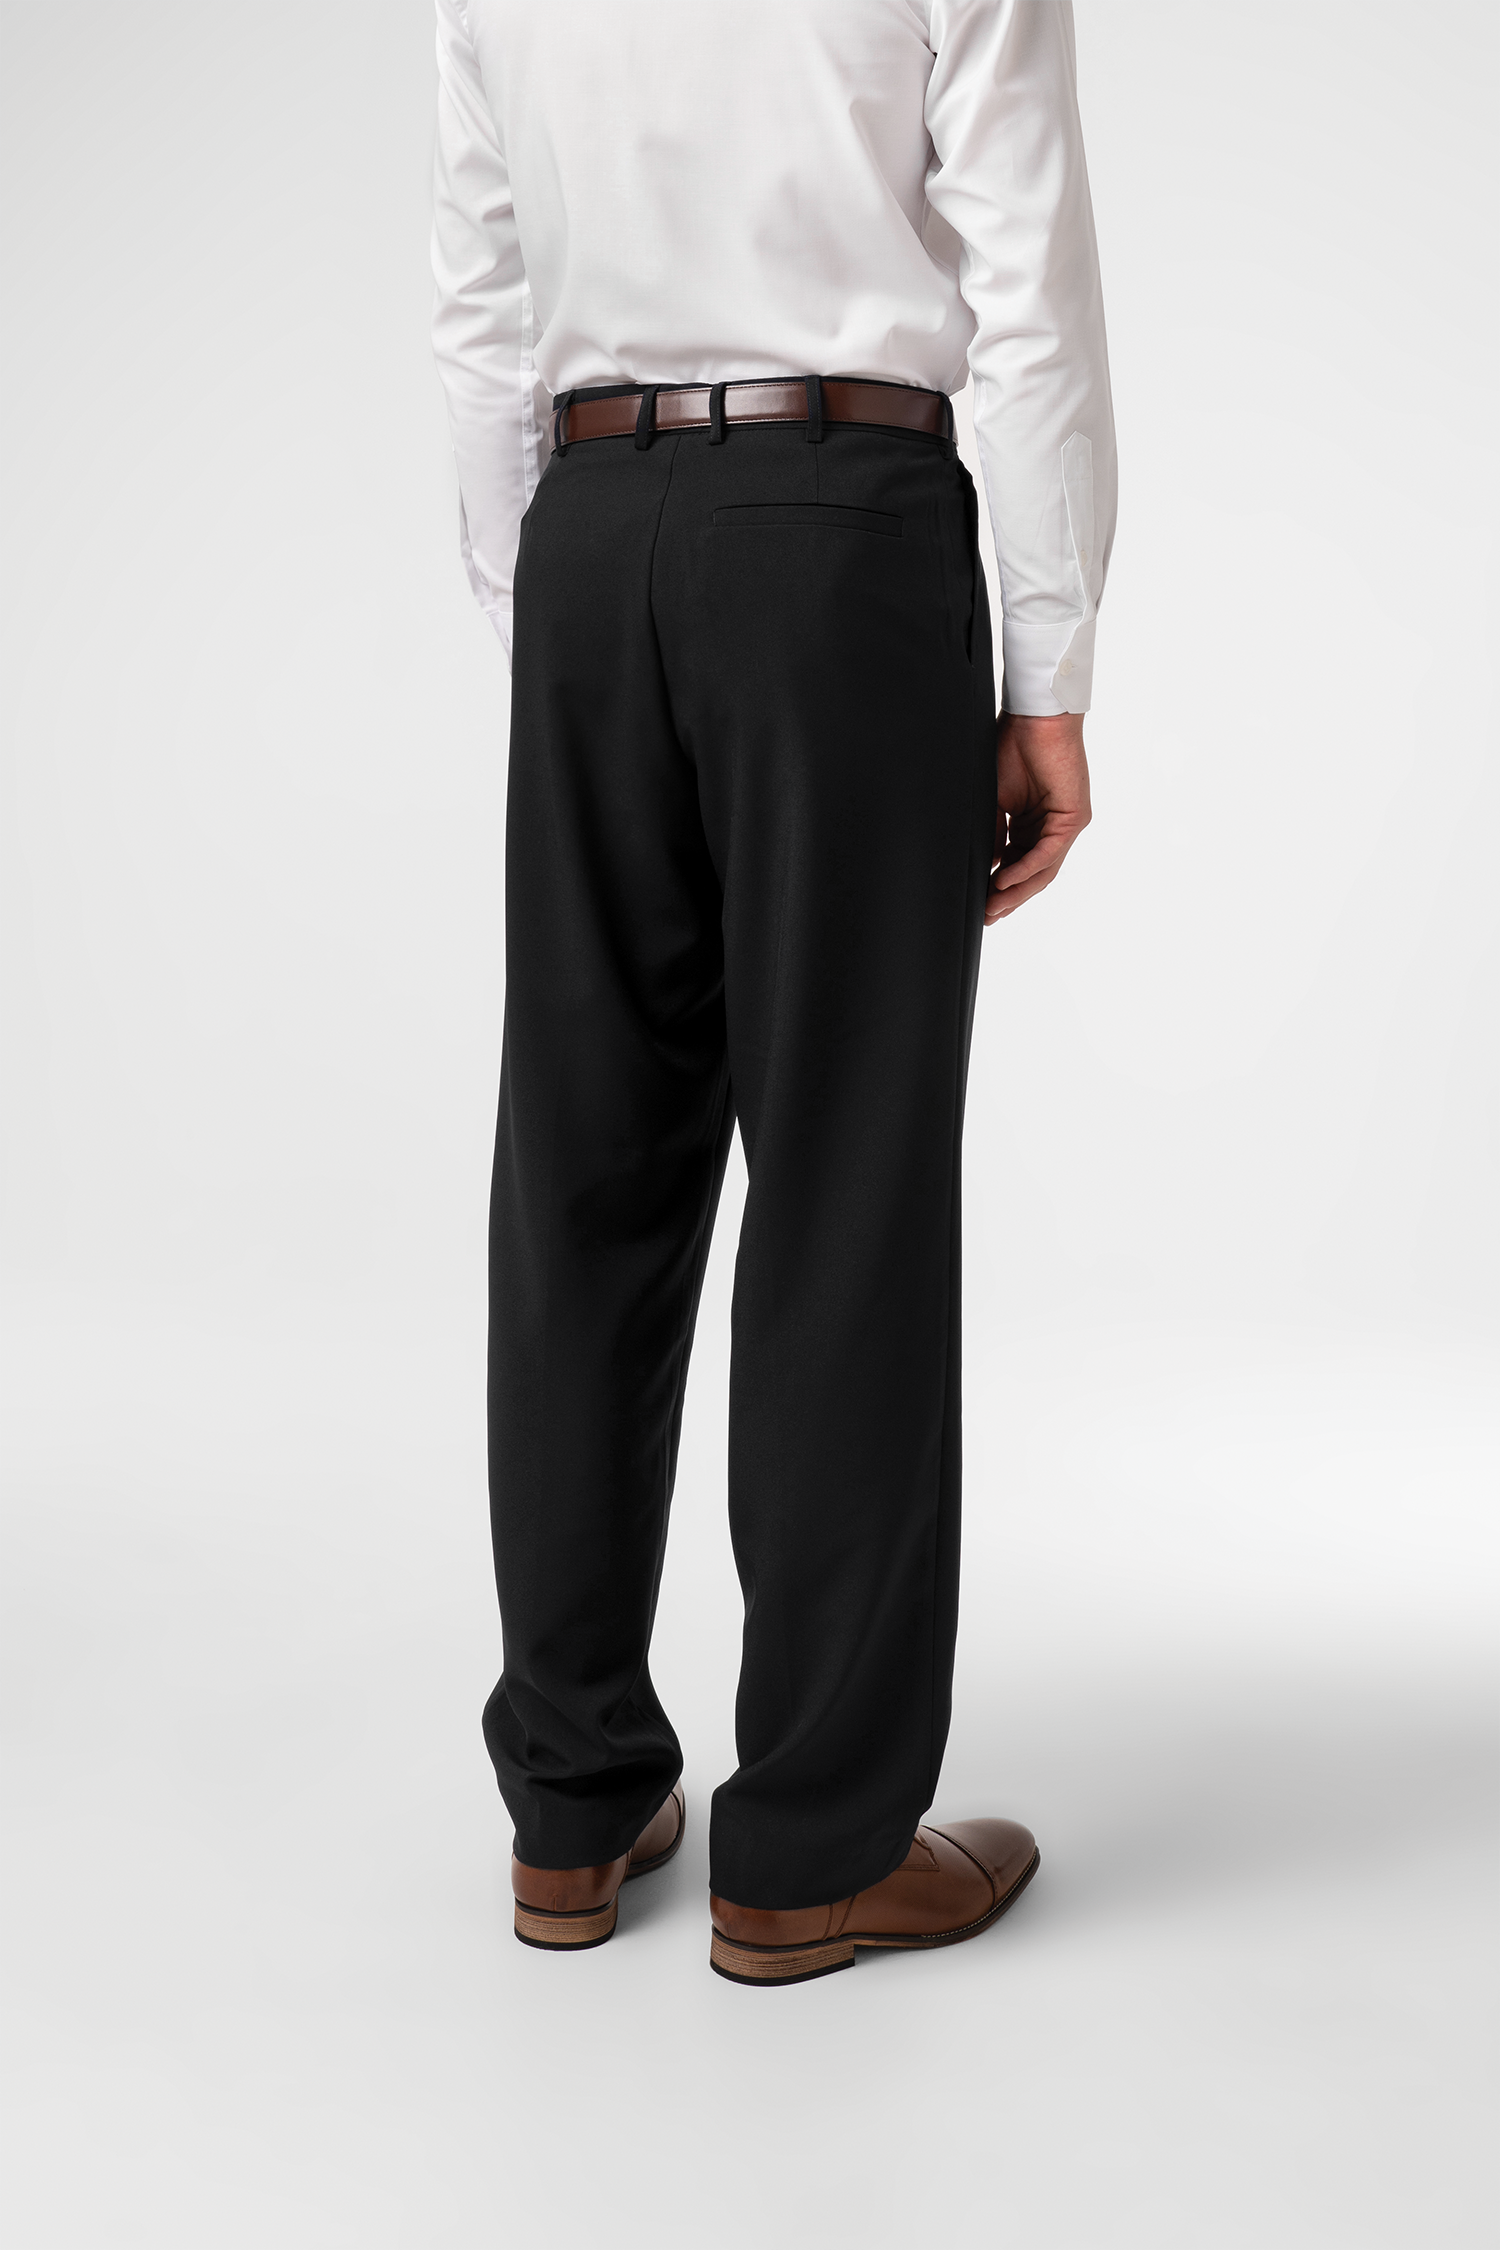 Soft Suiting Men's Twin Pleat Trouser - black